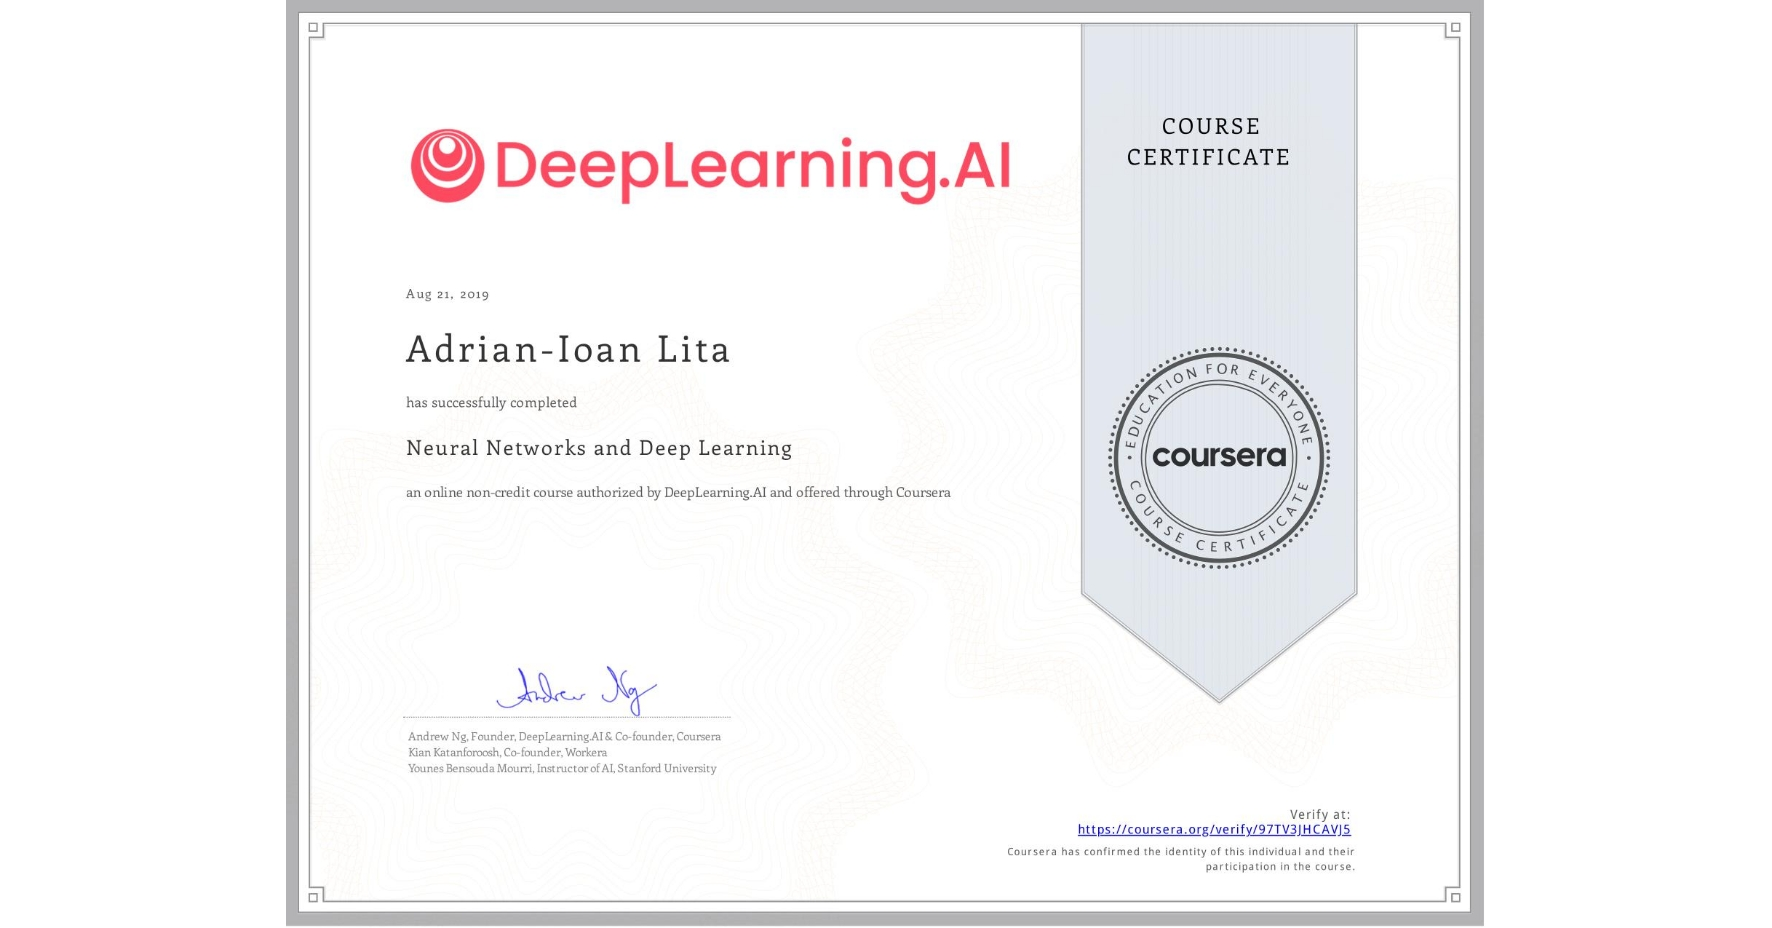 View certificate for Adrian-Ioan Lita, Neural Networks and Deep Learning, an online non-credit course authorized by DeepLearning.AI and offered through Coursera